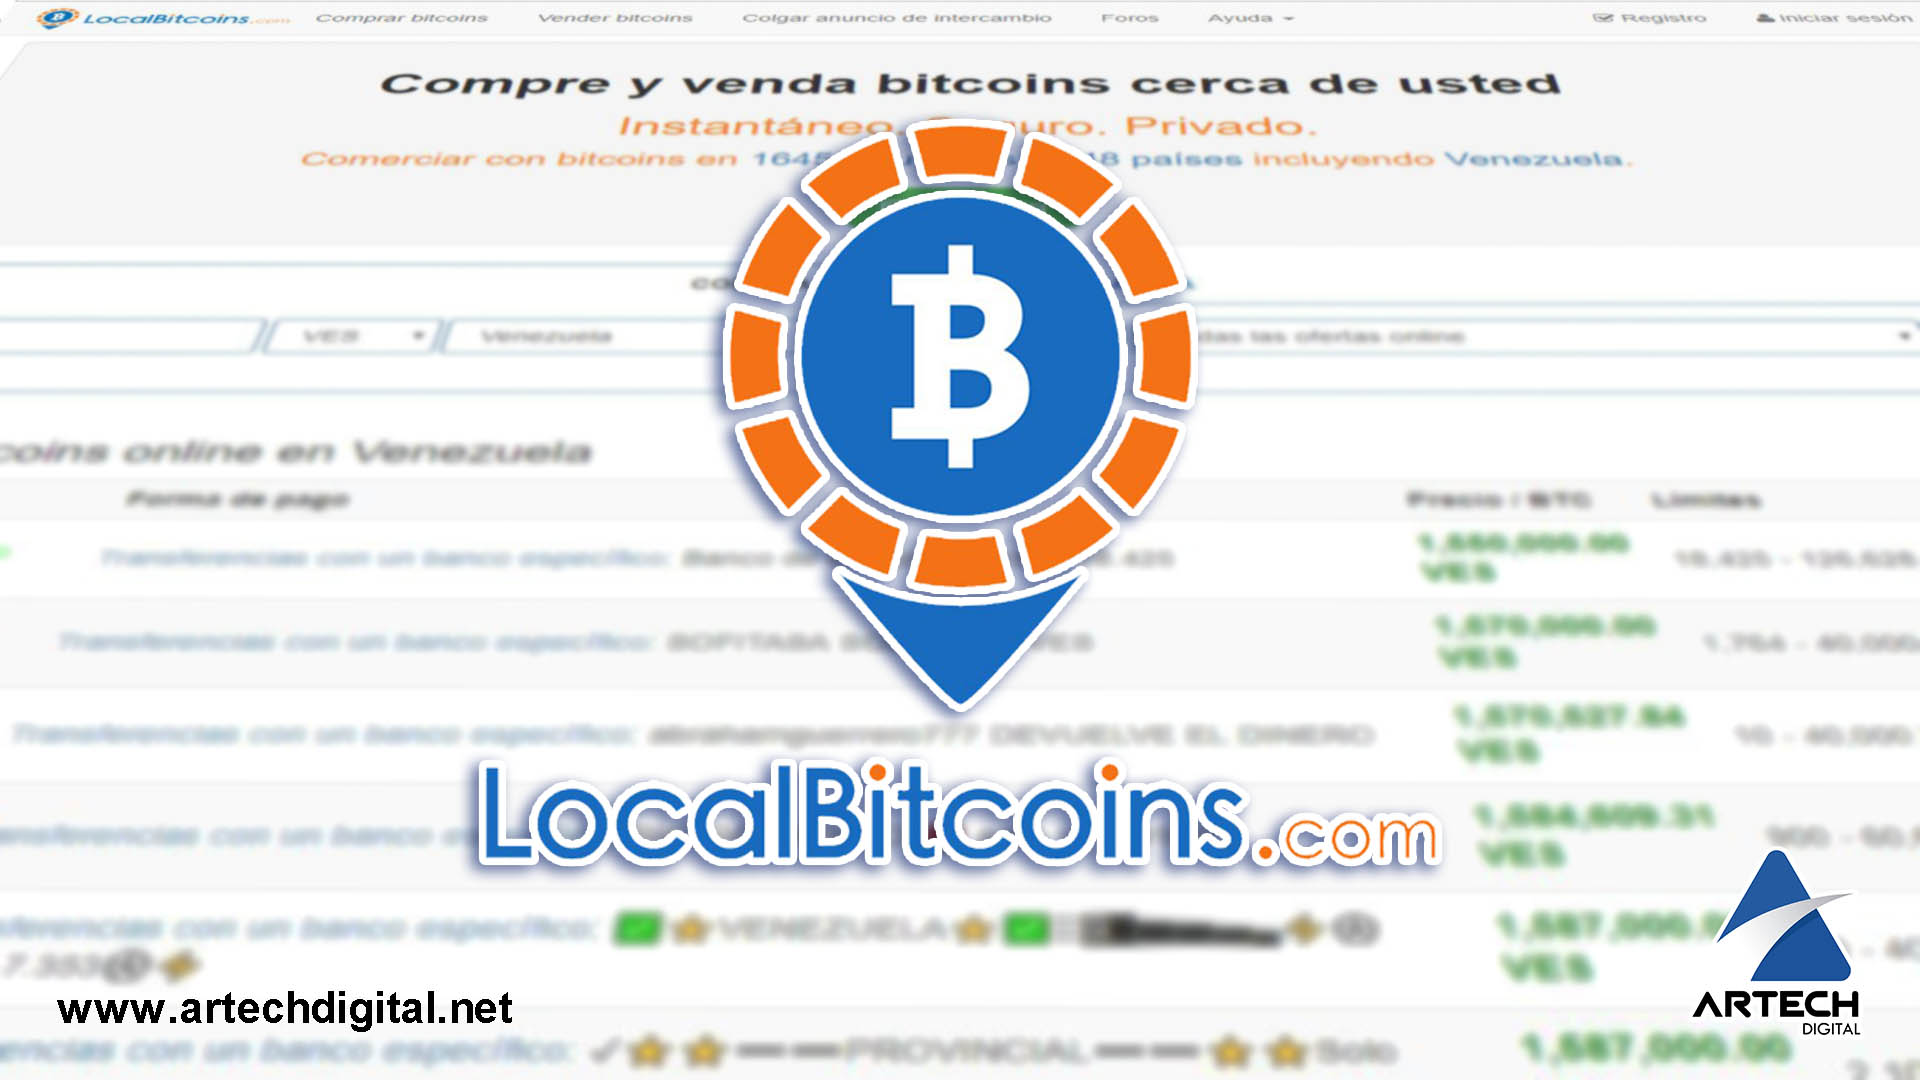 Artech Digital - LocalBitcoins